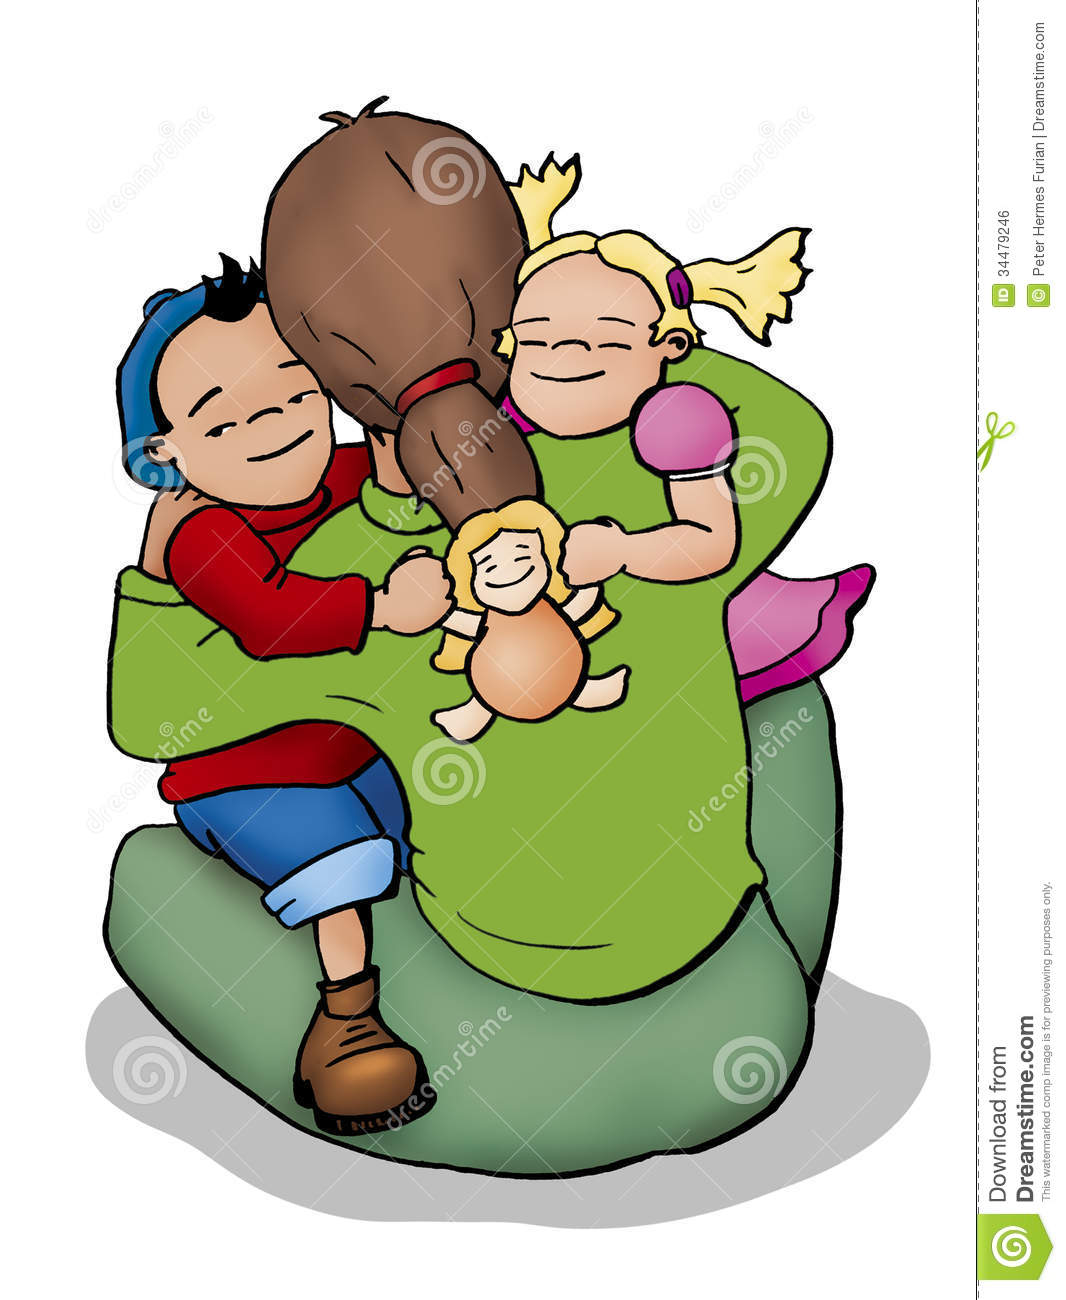 Illustration Of A Mother A Boy And A Girl Hugging